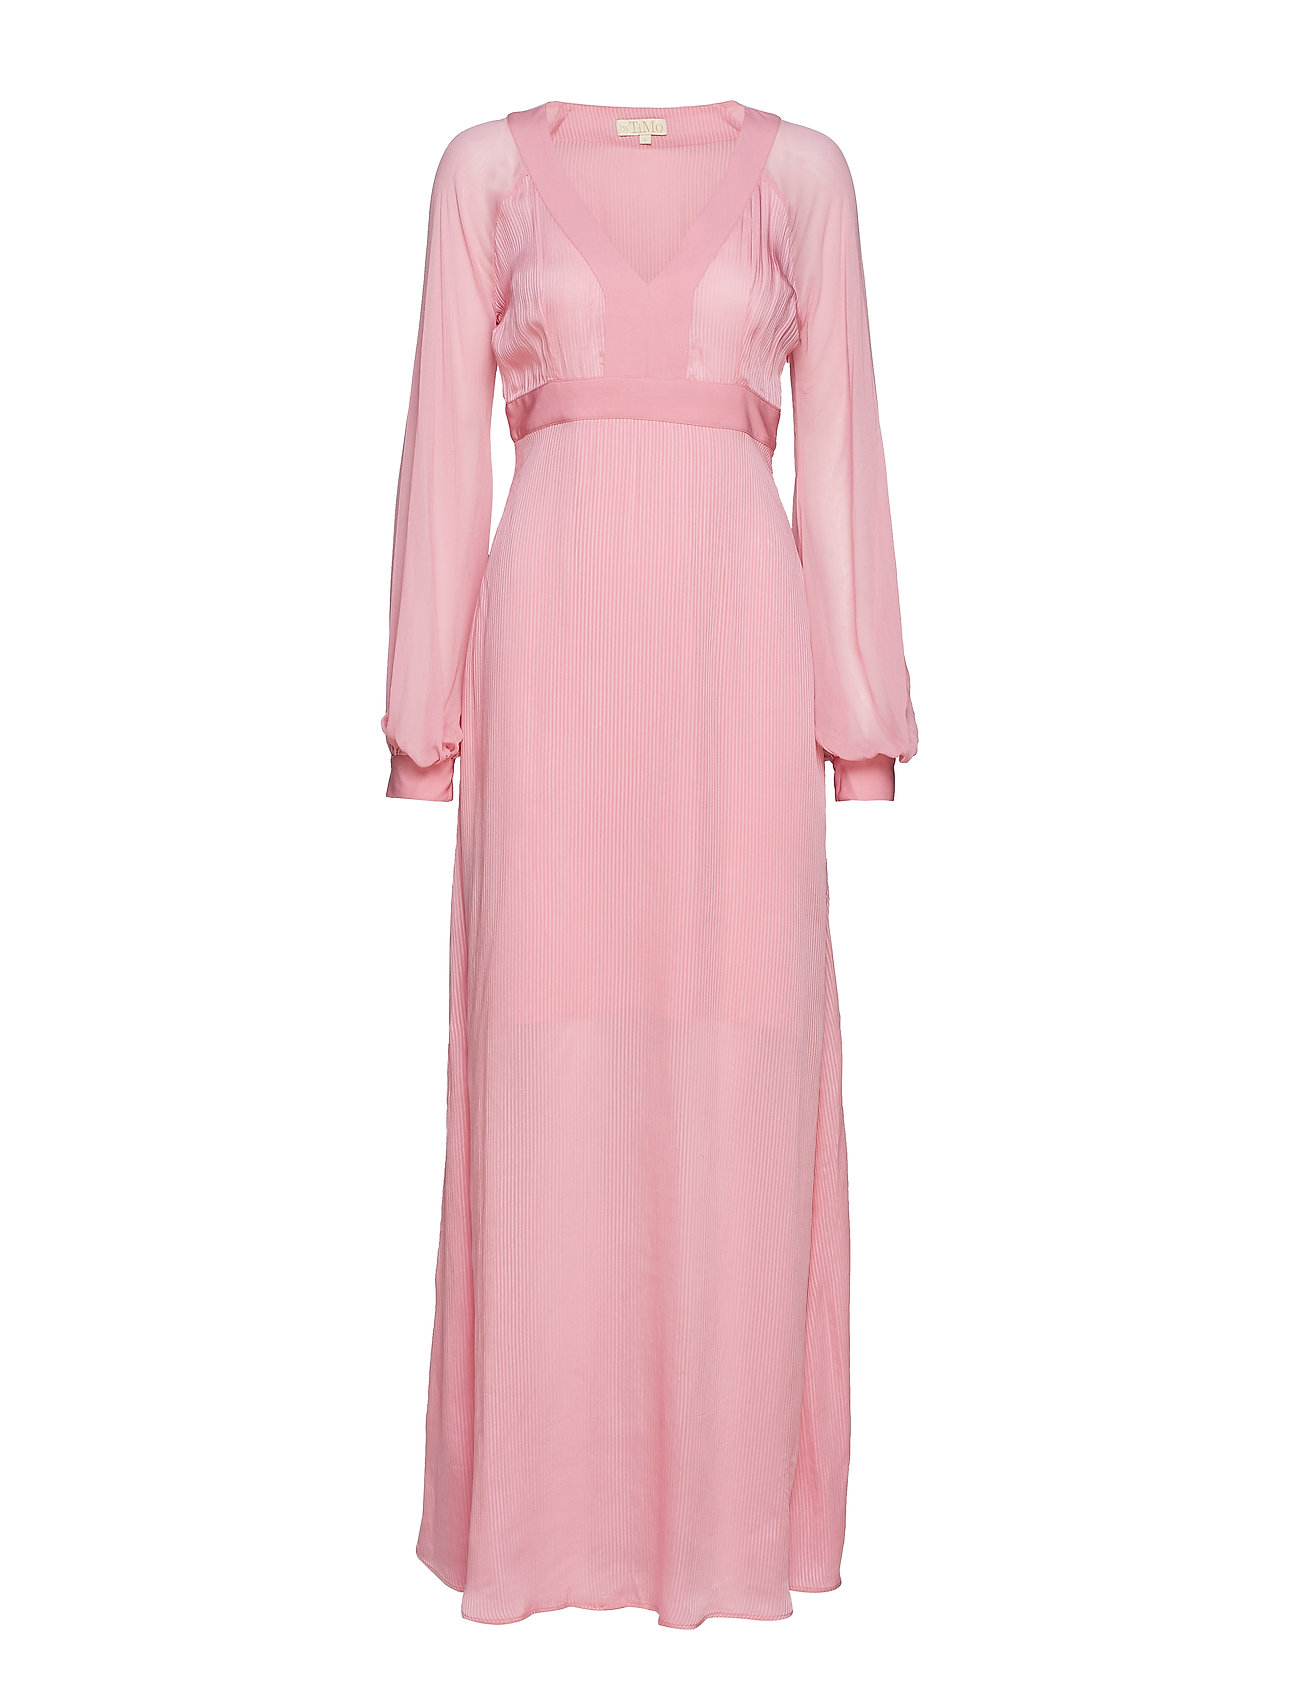 by Ti Mo Mix Gown - 242 PINK